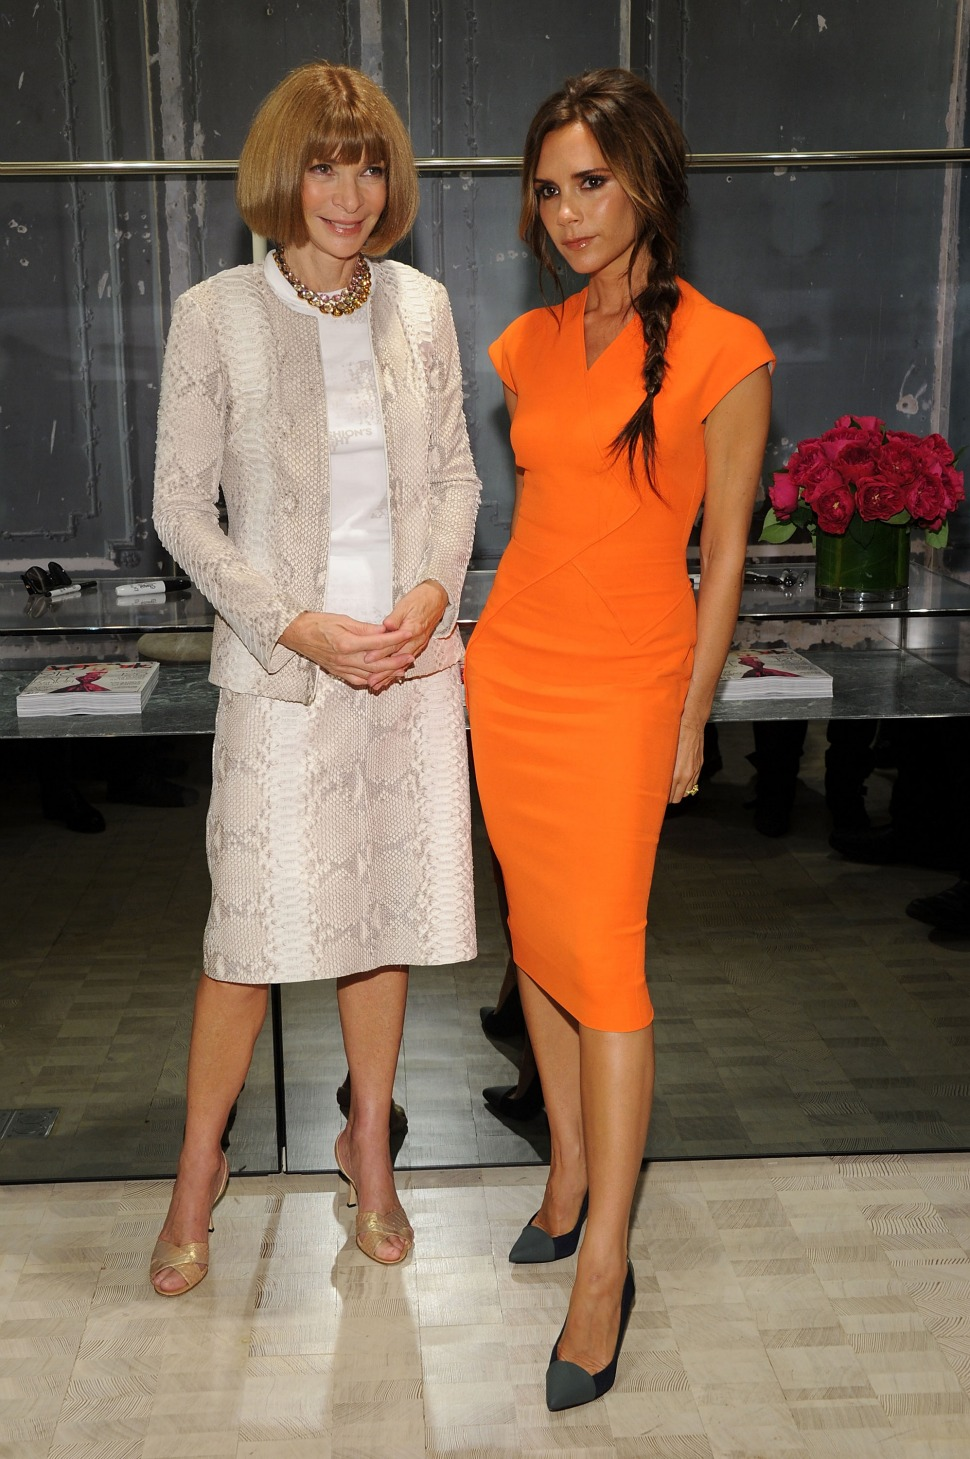 Anna Wintour with Victoria Beckham.